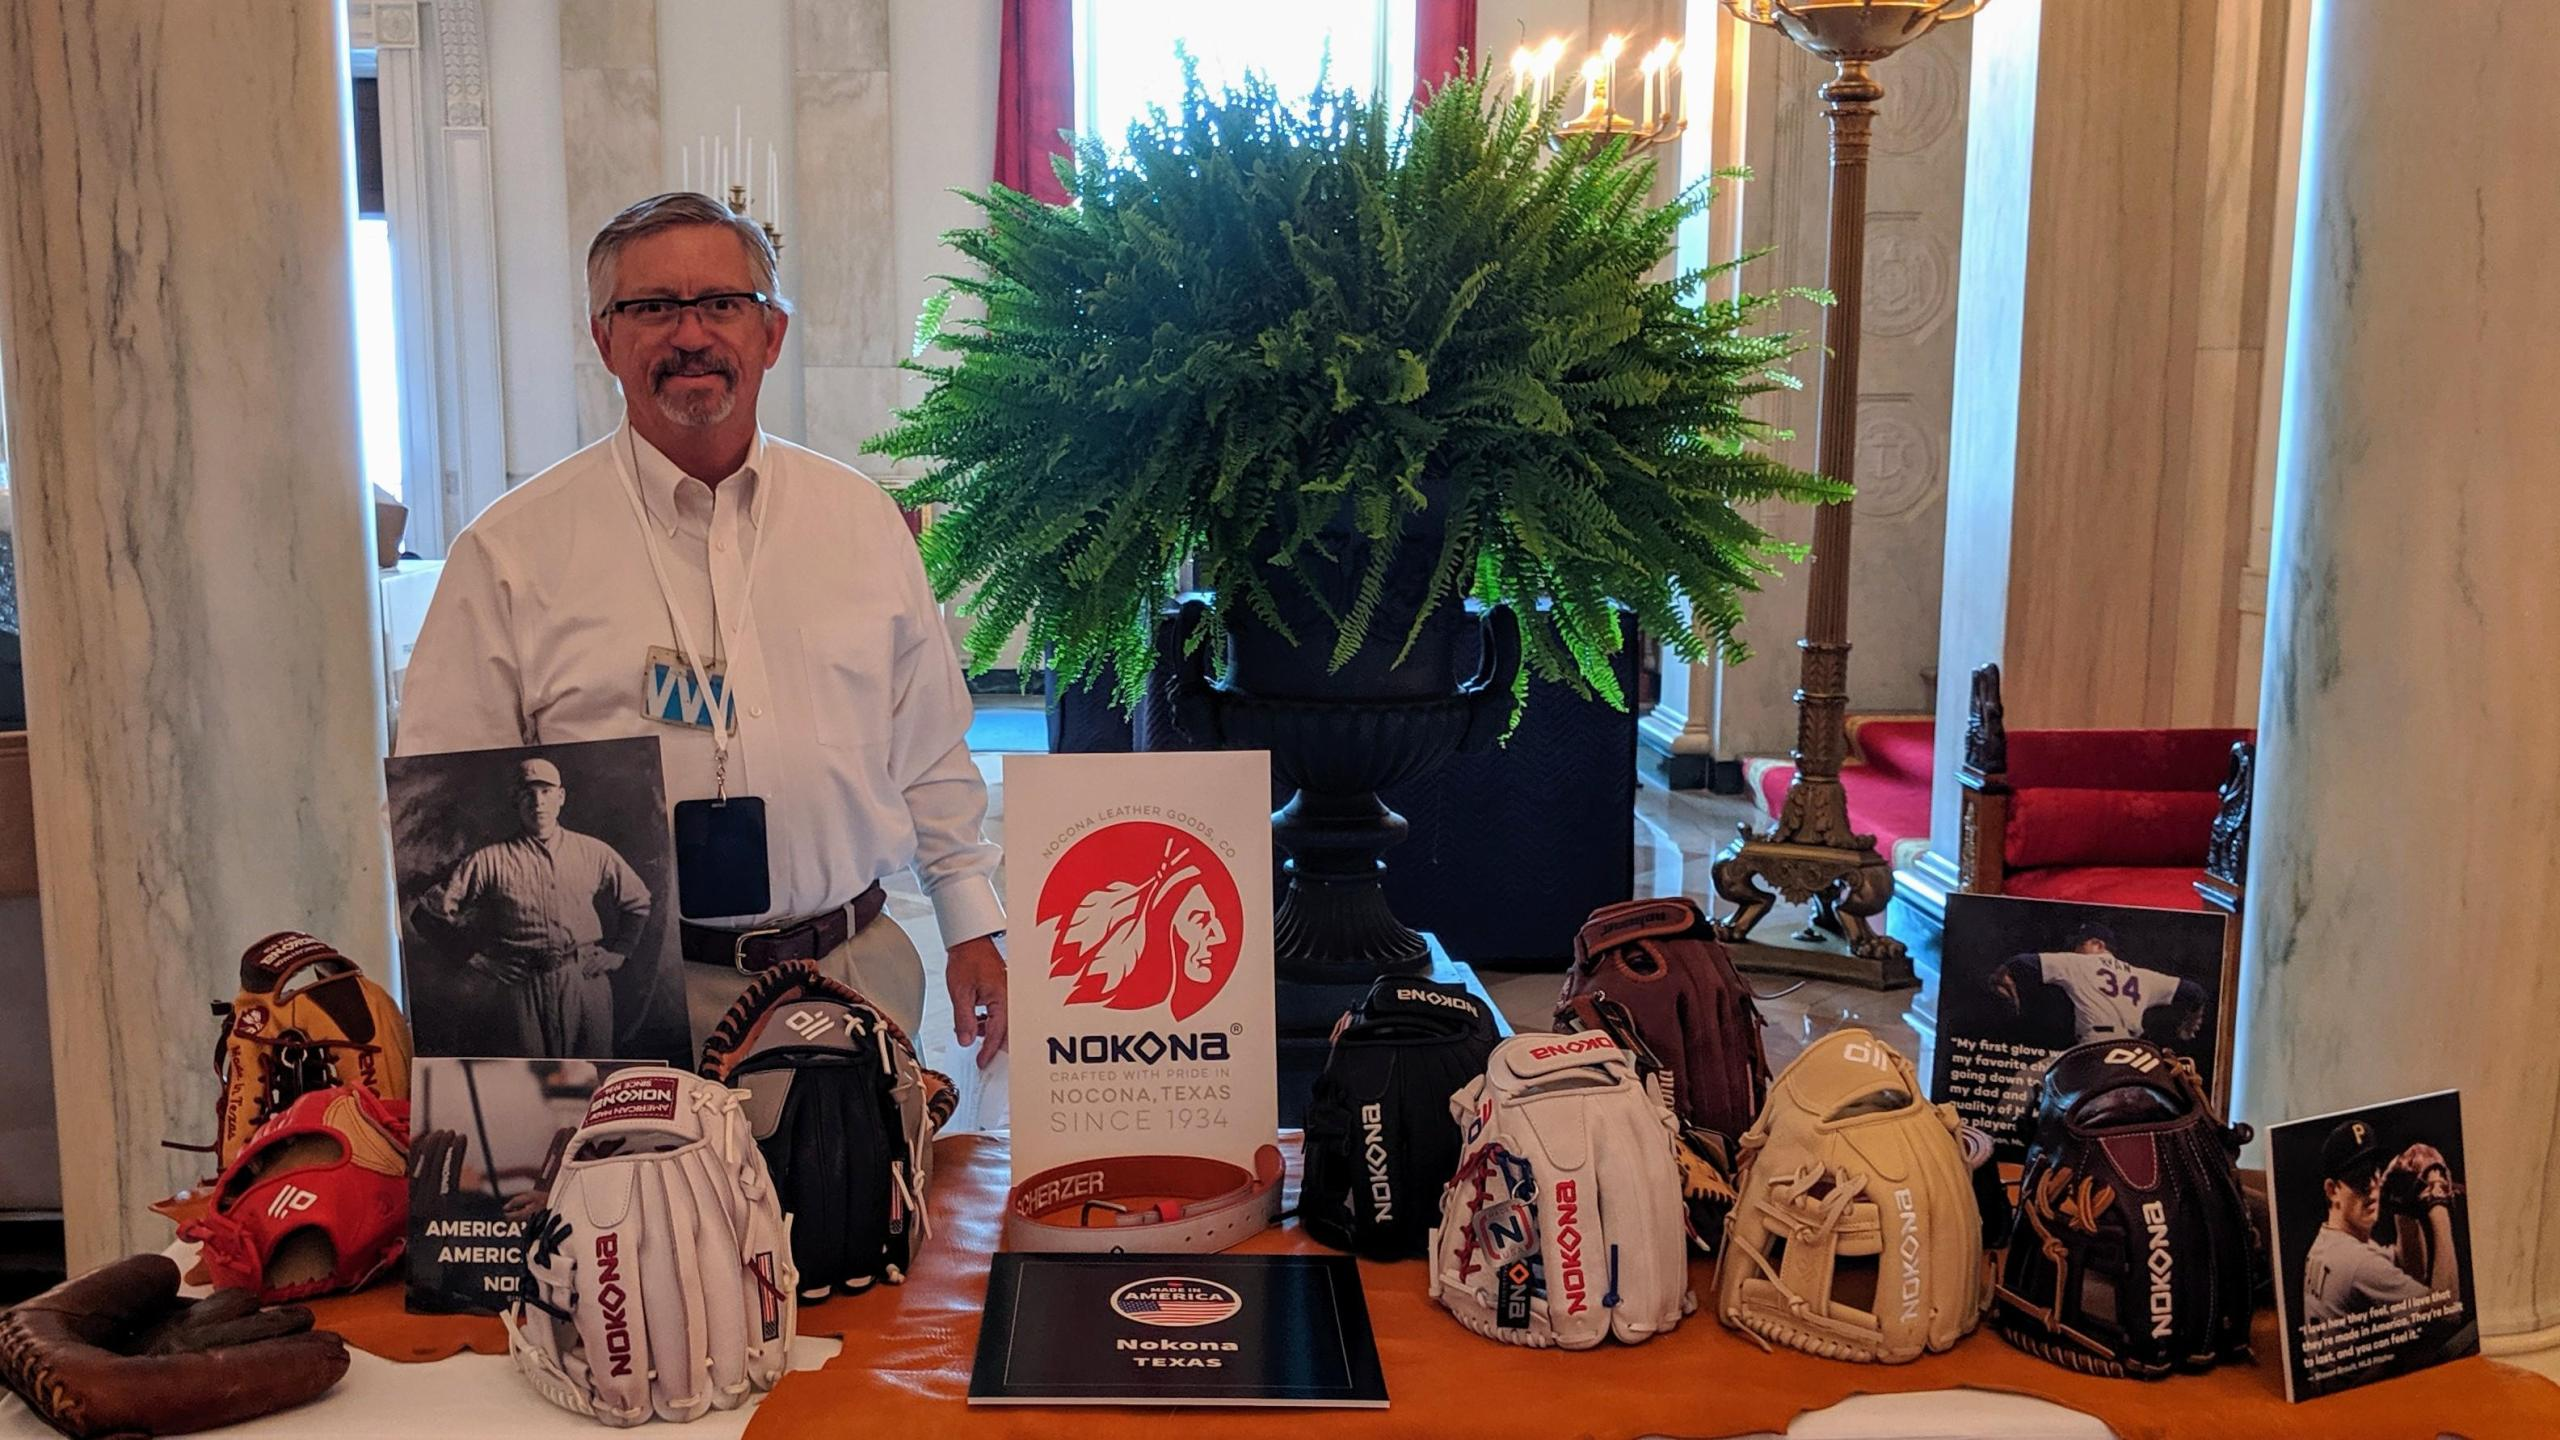 The last remaining American made ball glove company was just recently honored at the White House for the third annual 'Made in America Day' and the company vice president has returned to Nocona full of pride in his family's achievement, and the workers who make the gloves.